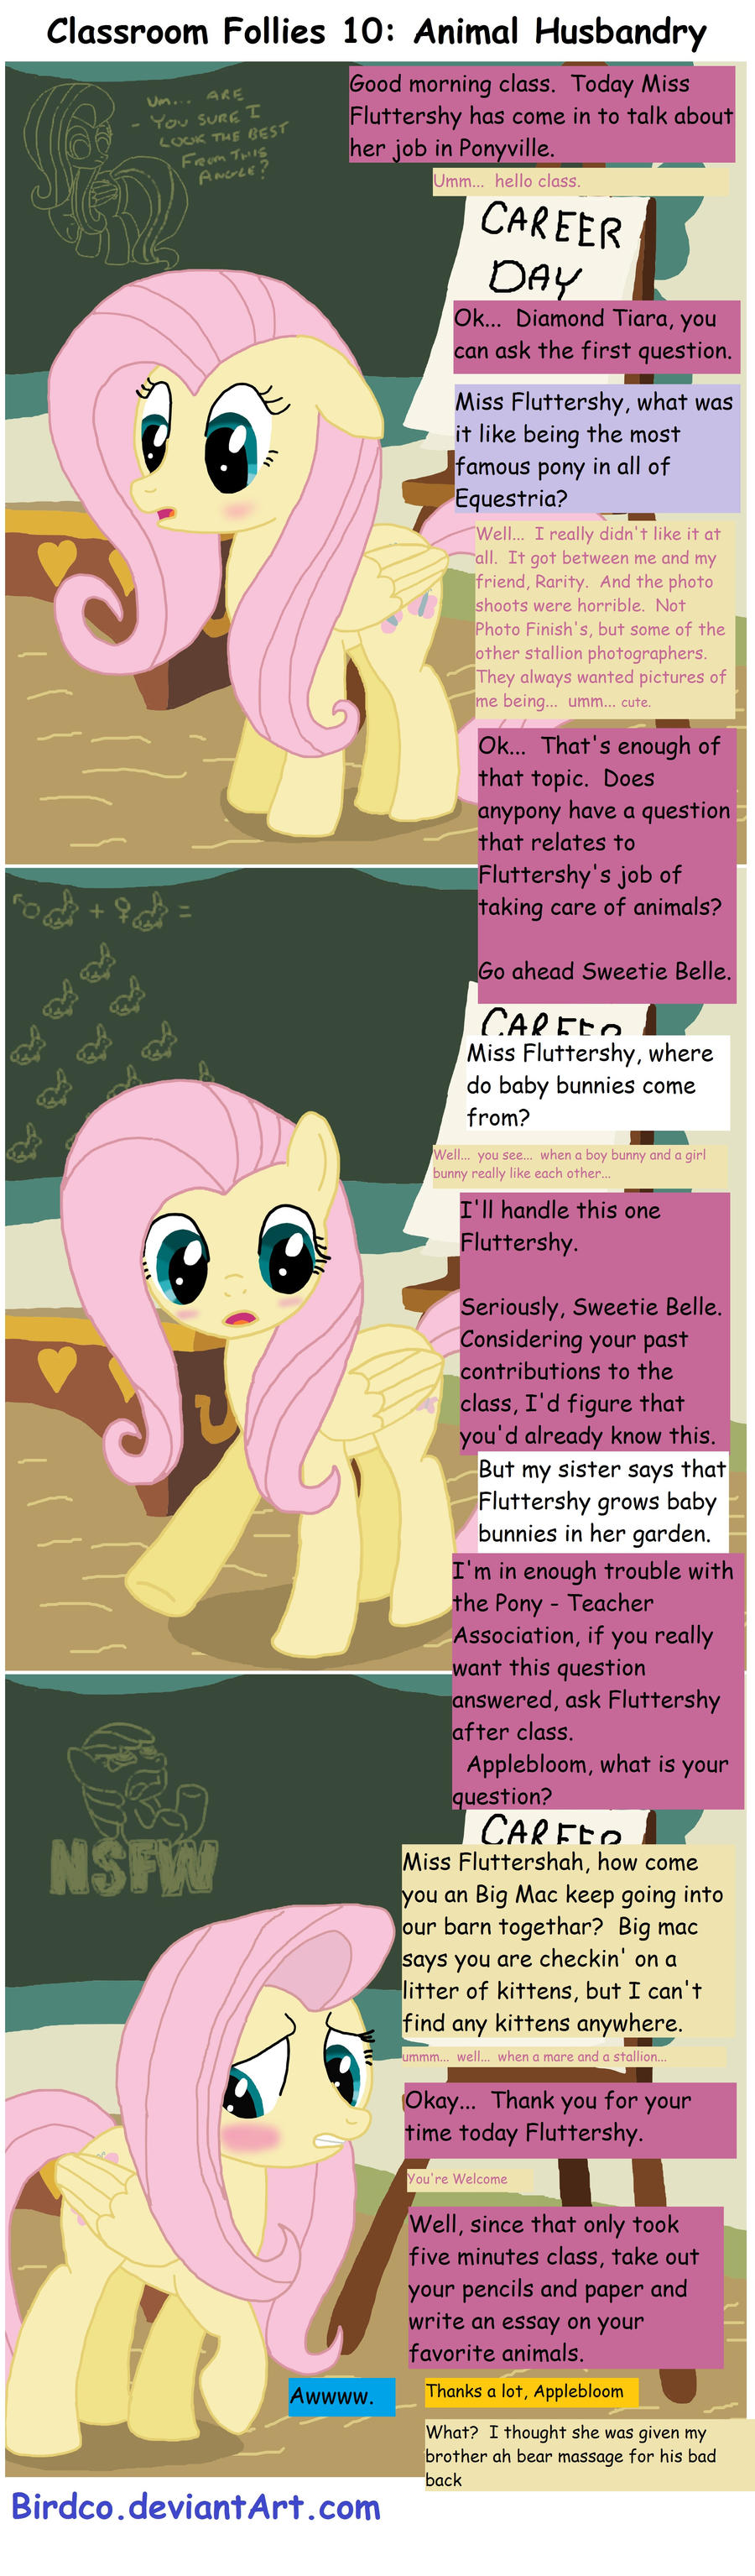 Classroom Follies 10 by Birdco